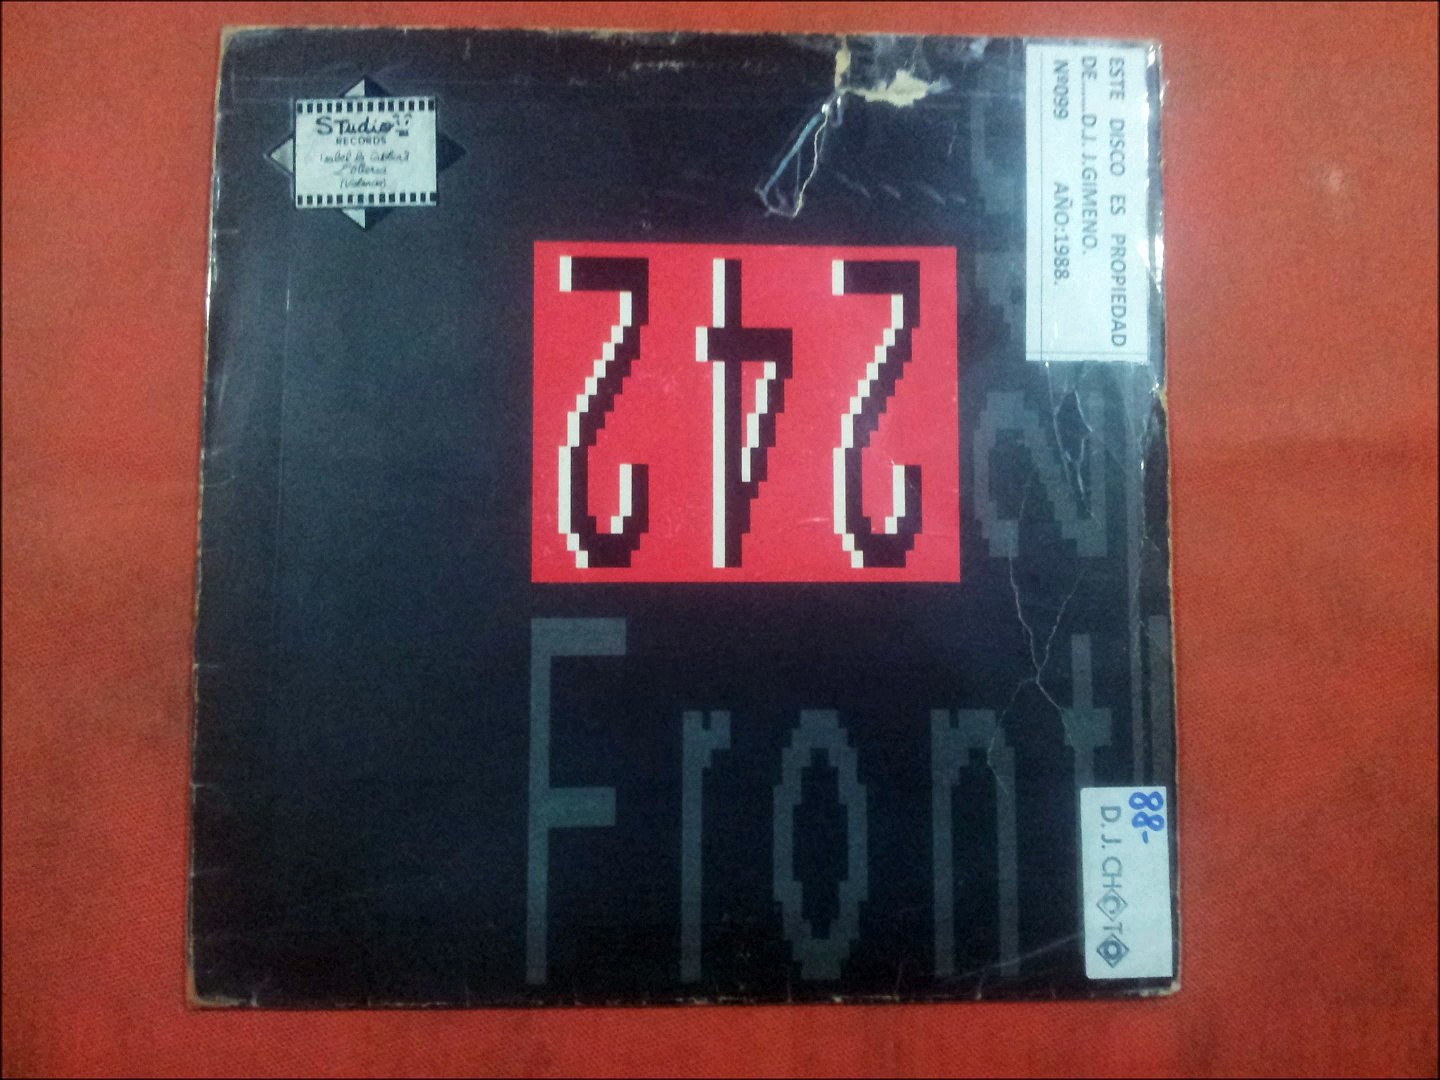 FRONT 242.''FRONT BY FRONT.''.(TERMINAL STATE.)(12'' LP.)(1988.)